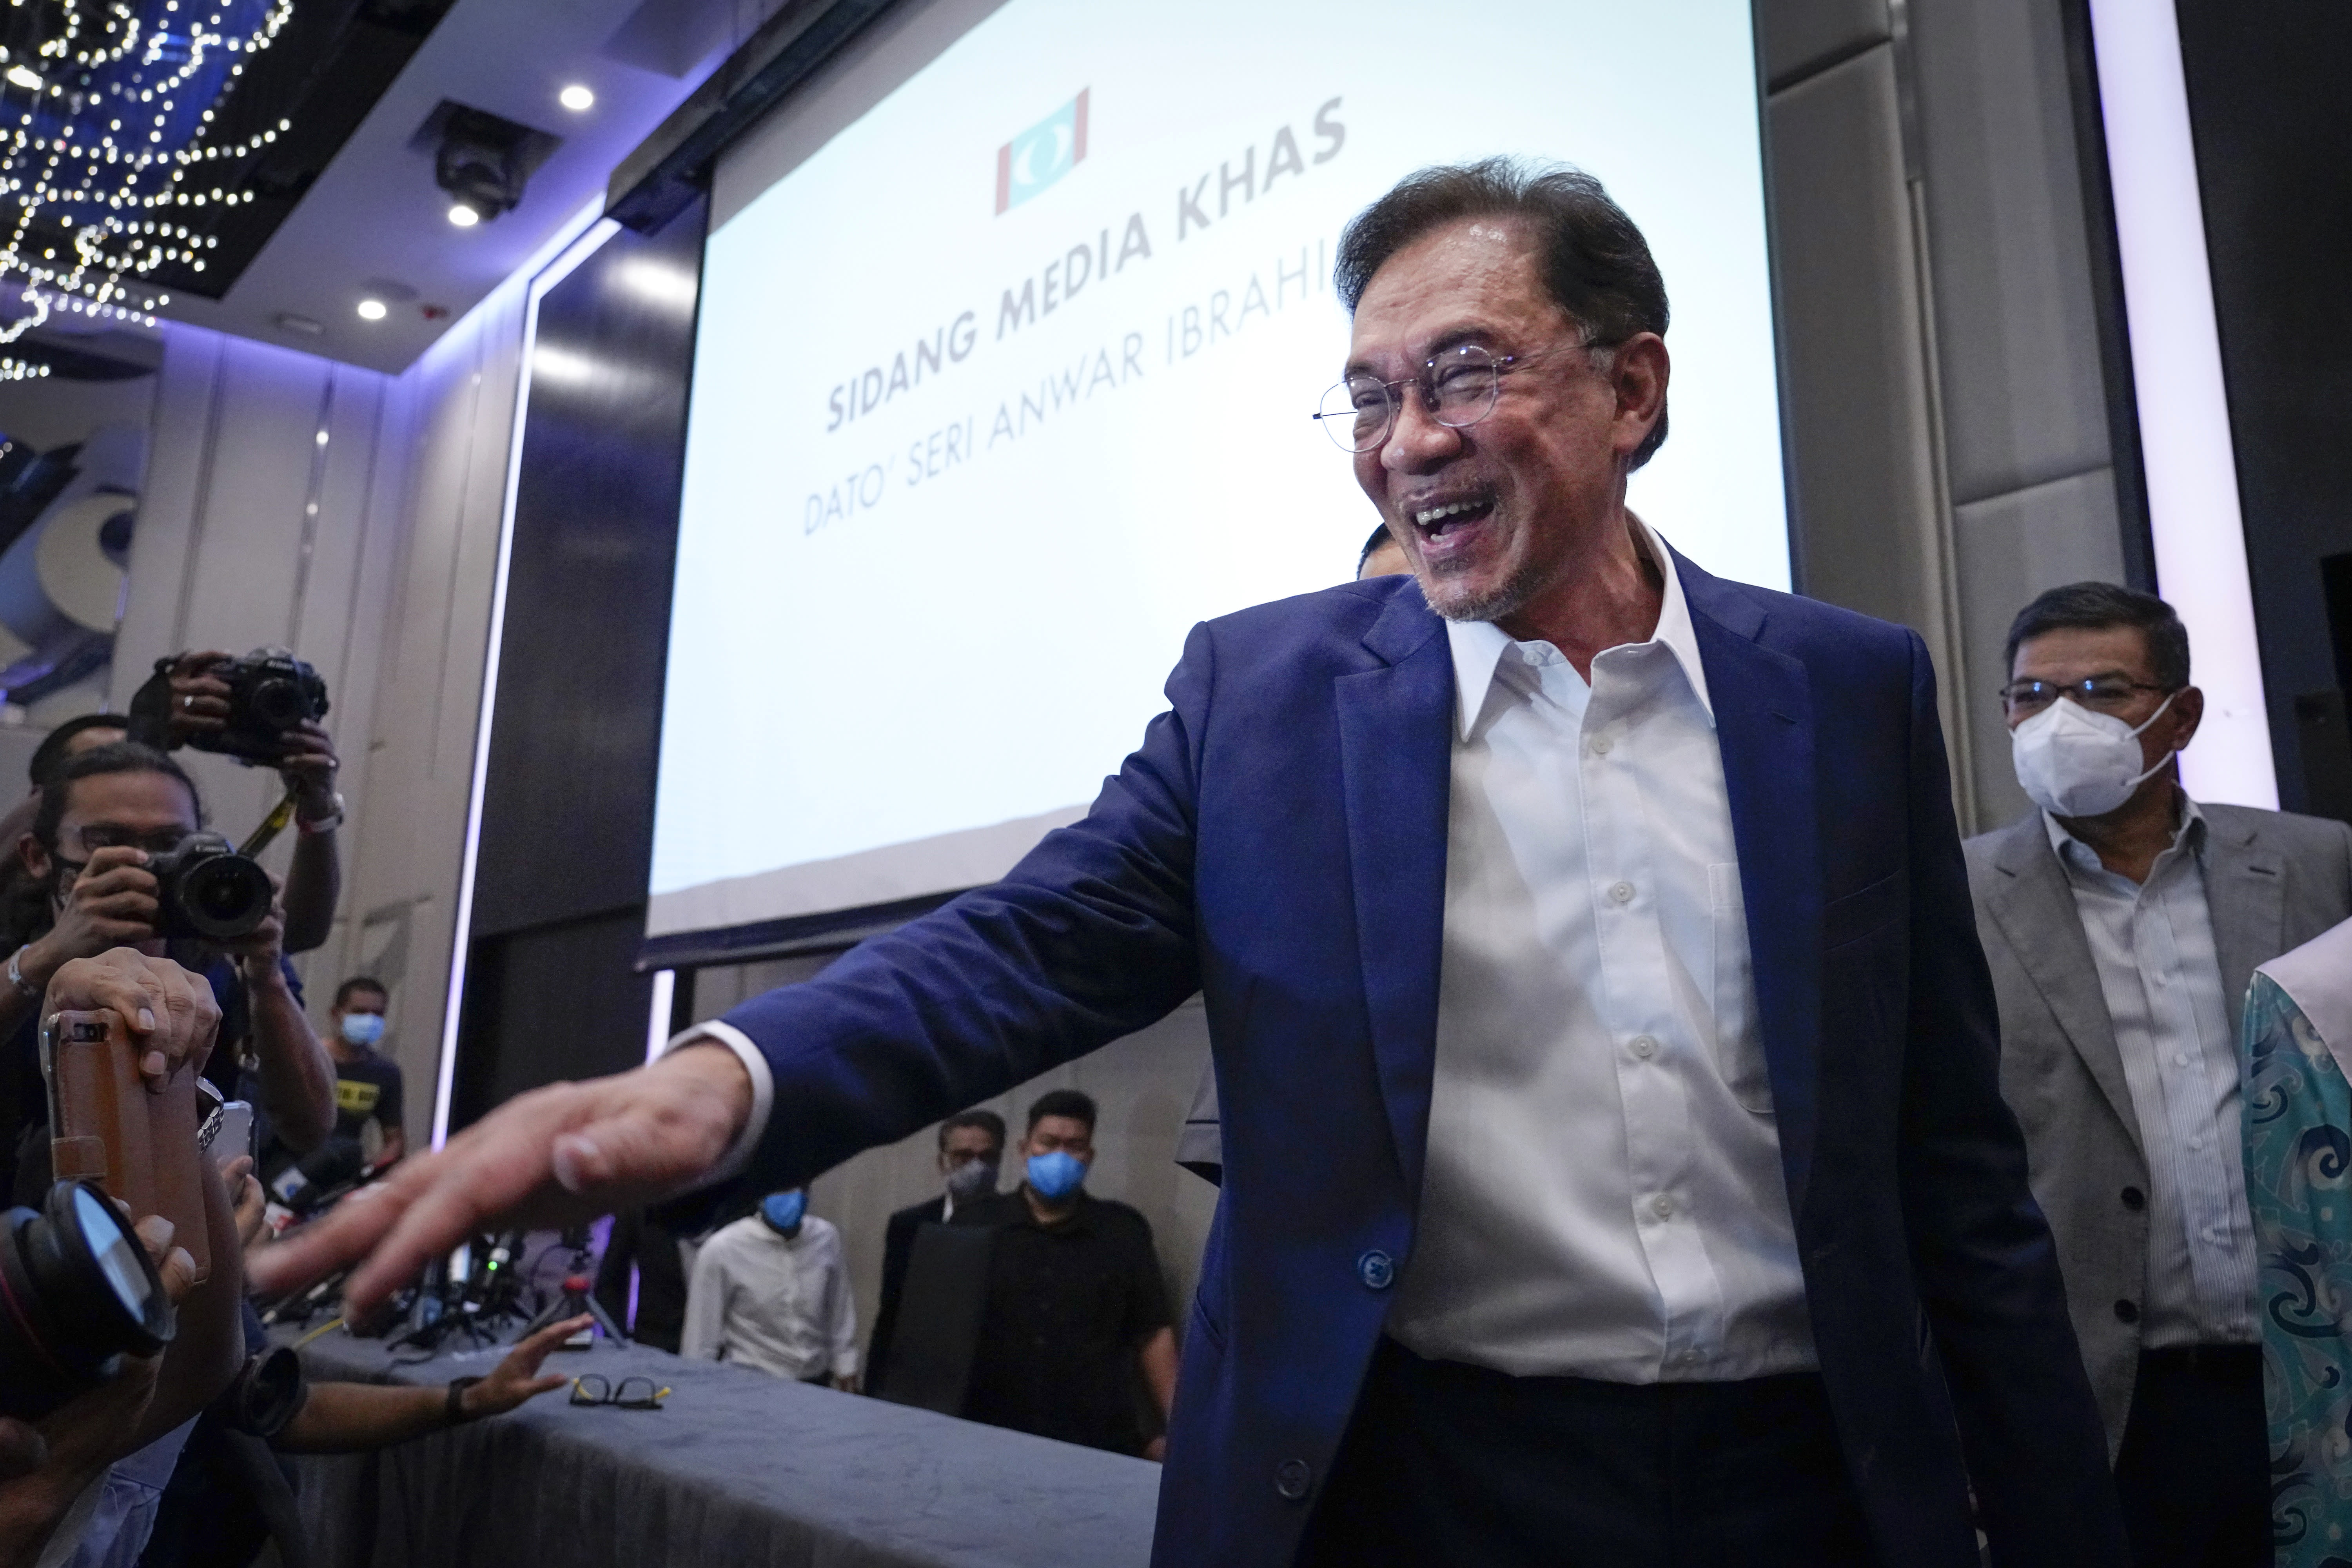 """Malaysia's opposition leader Anwar Ibrahim gestures as he leaves after a press conference in Kuala Lumpur, Wednesday, Sept. 23, 2020. Anwar said he has secured a majority in parliament to form a new government that is """"strong, stable and formidable."""" (AP Photo/Vincent Thian)"""